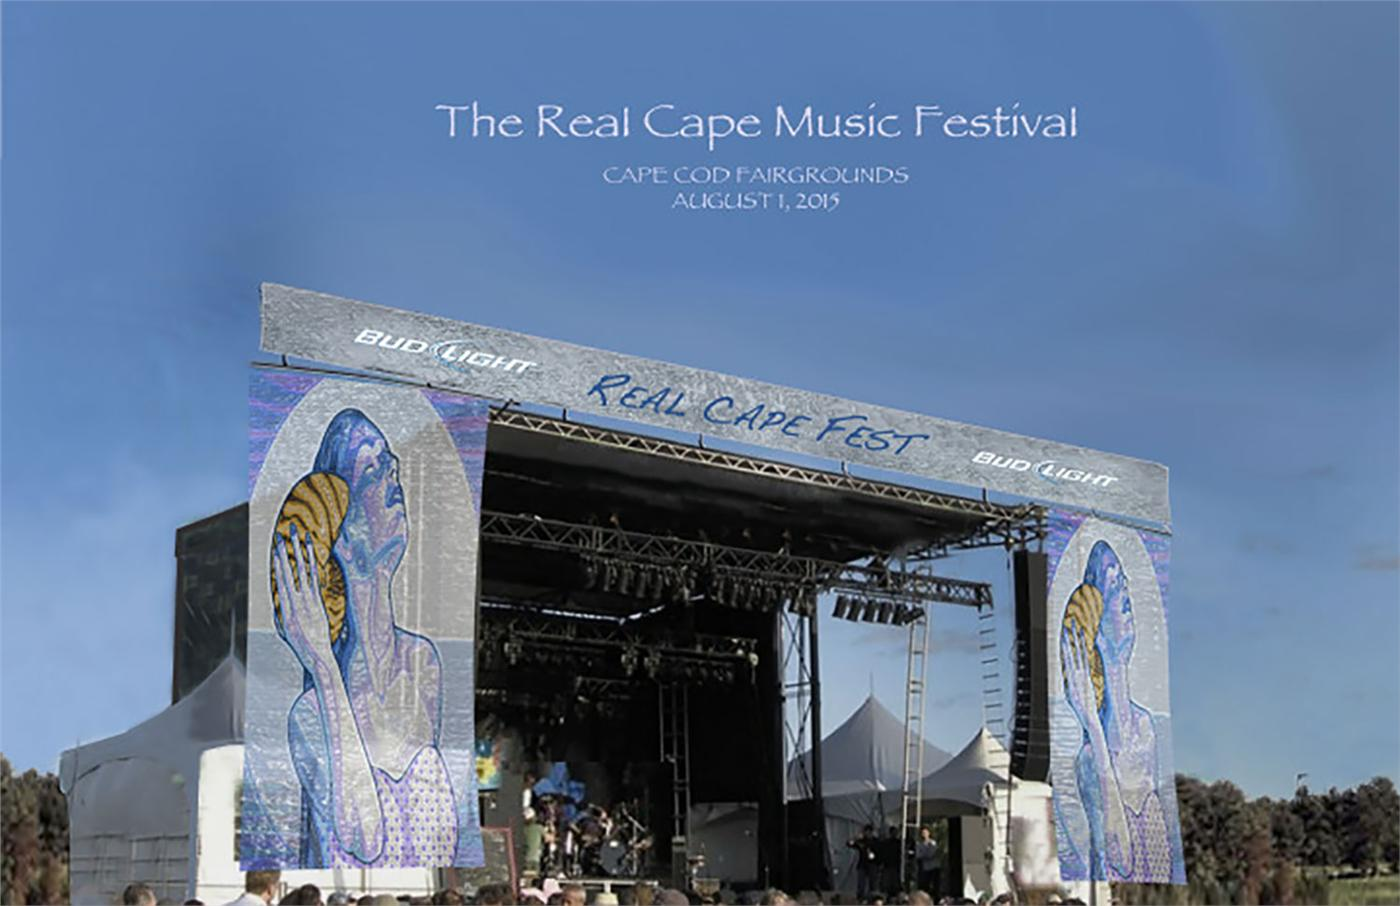 Local music and salty air should make for a perfect event this weekend as The Real Cape Music Festival gets underway on the Cape Cod fairgrounds.